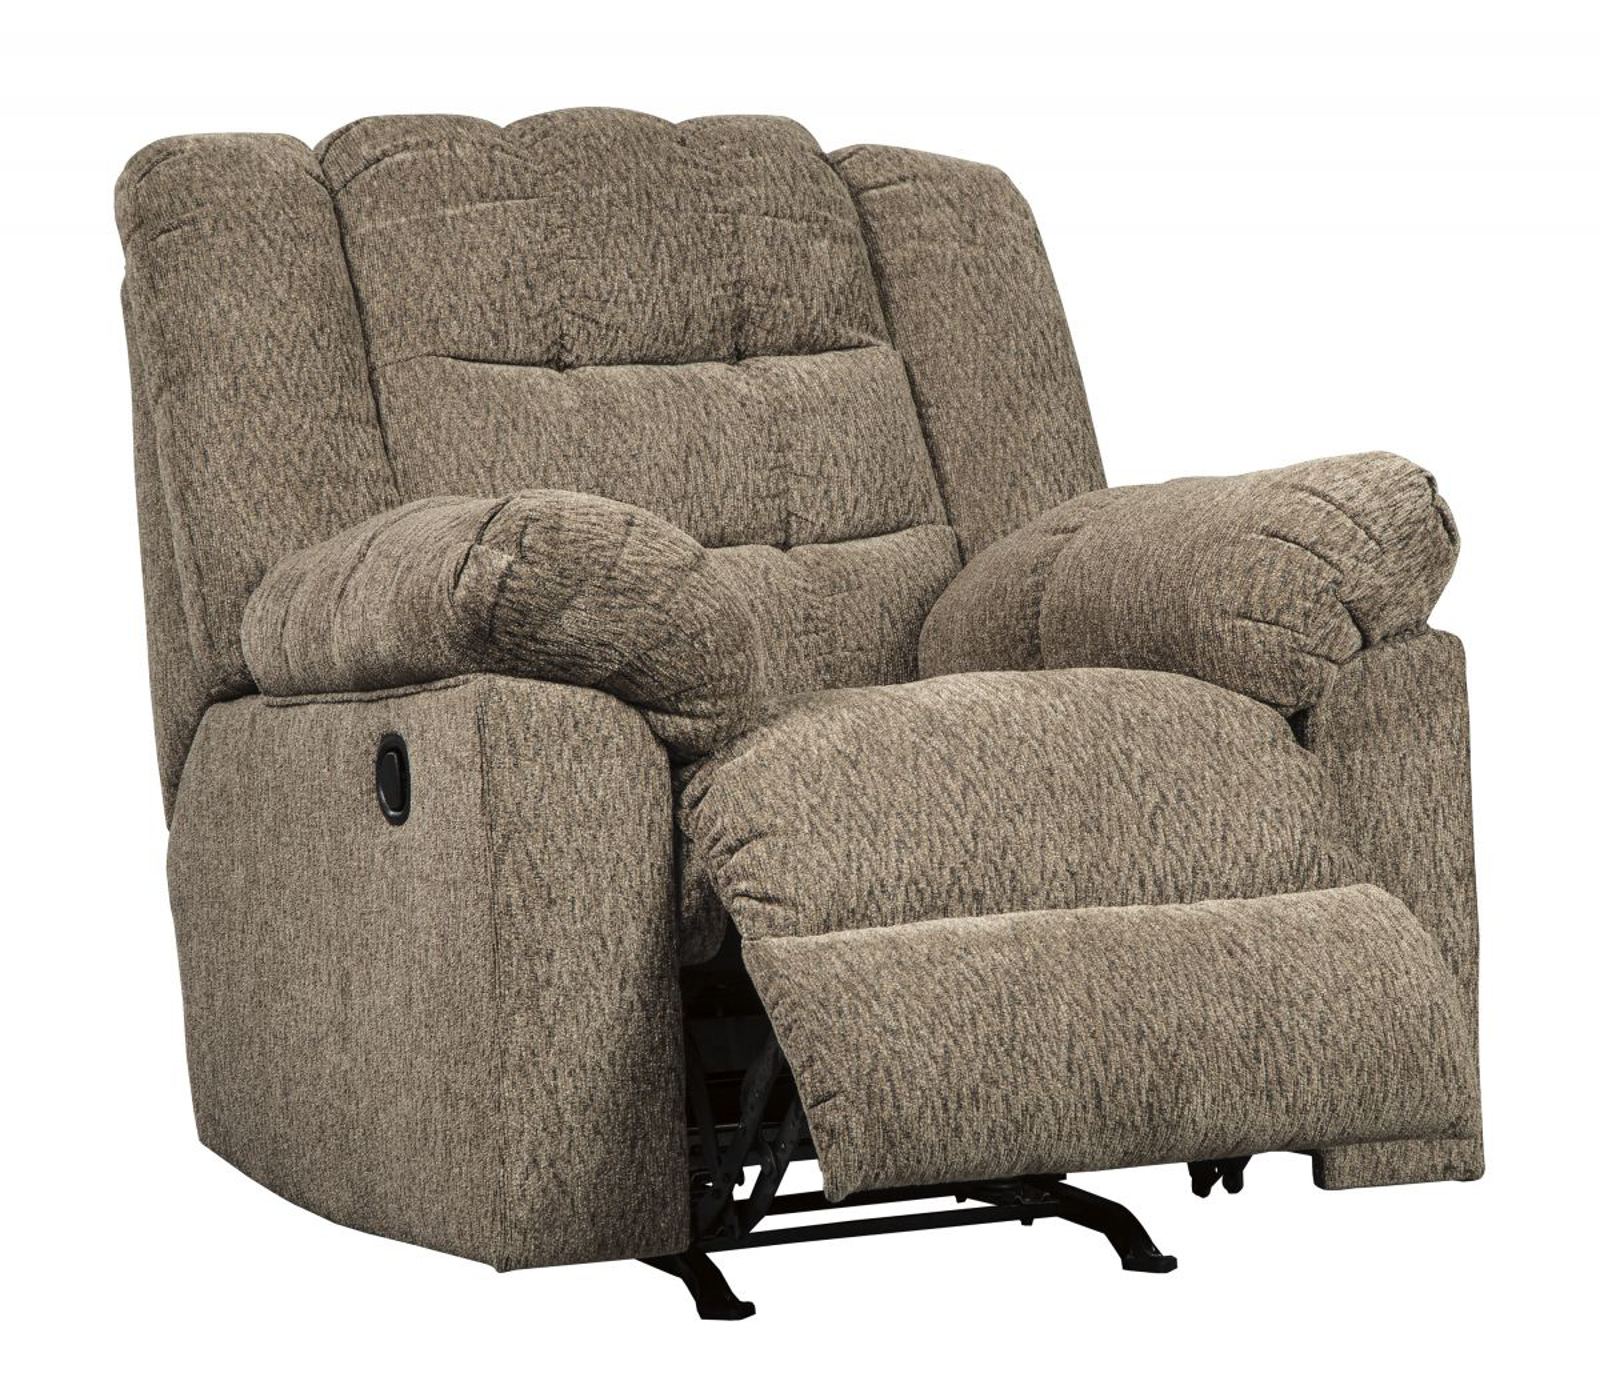 Picture of Workhorse Recliner